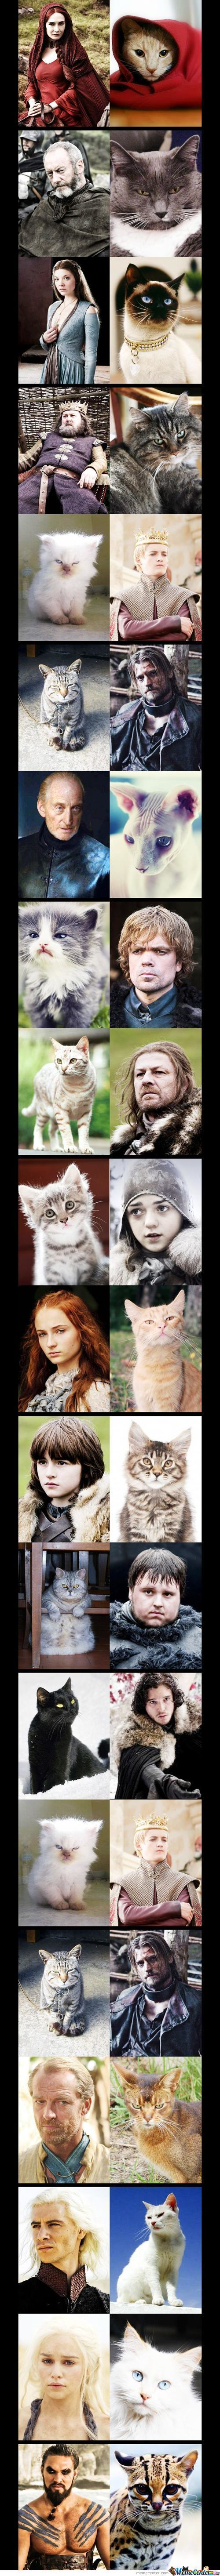 Game Of Thrones: Kitty Edition